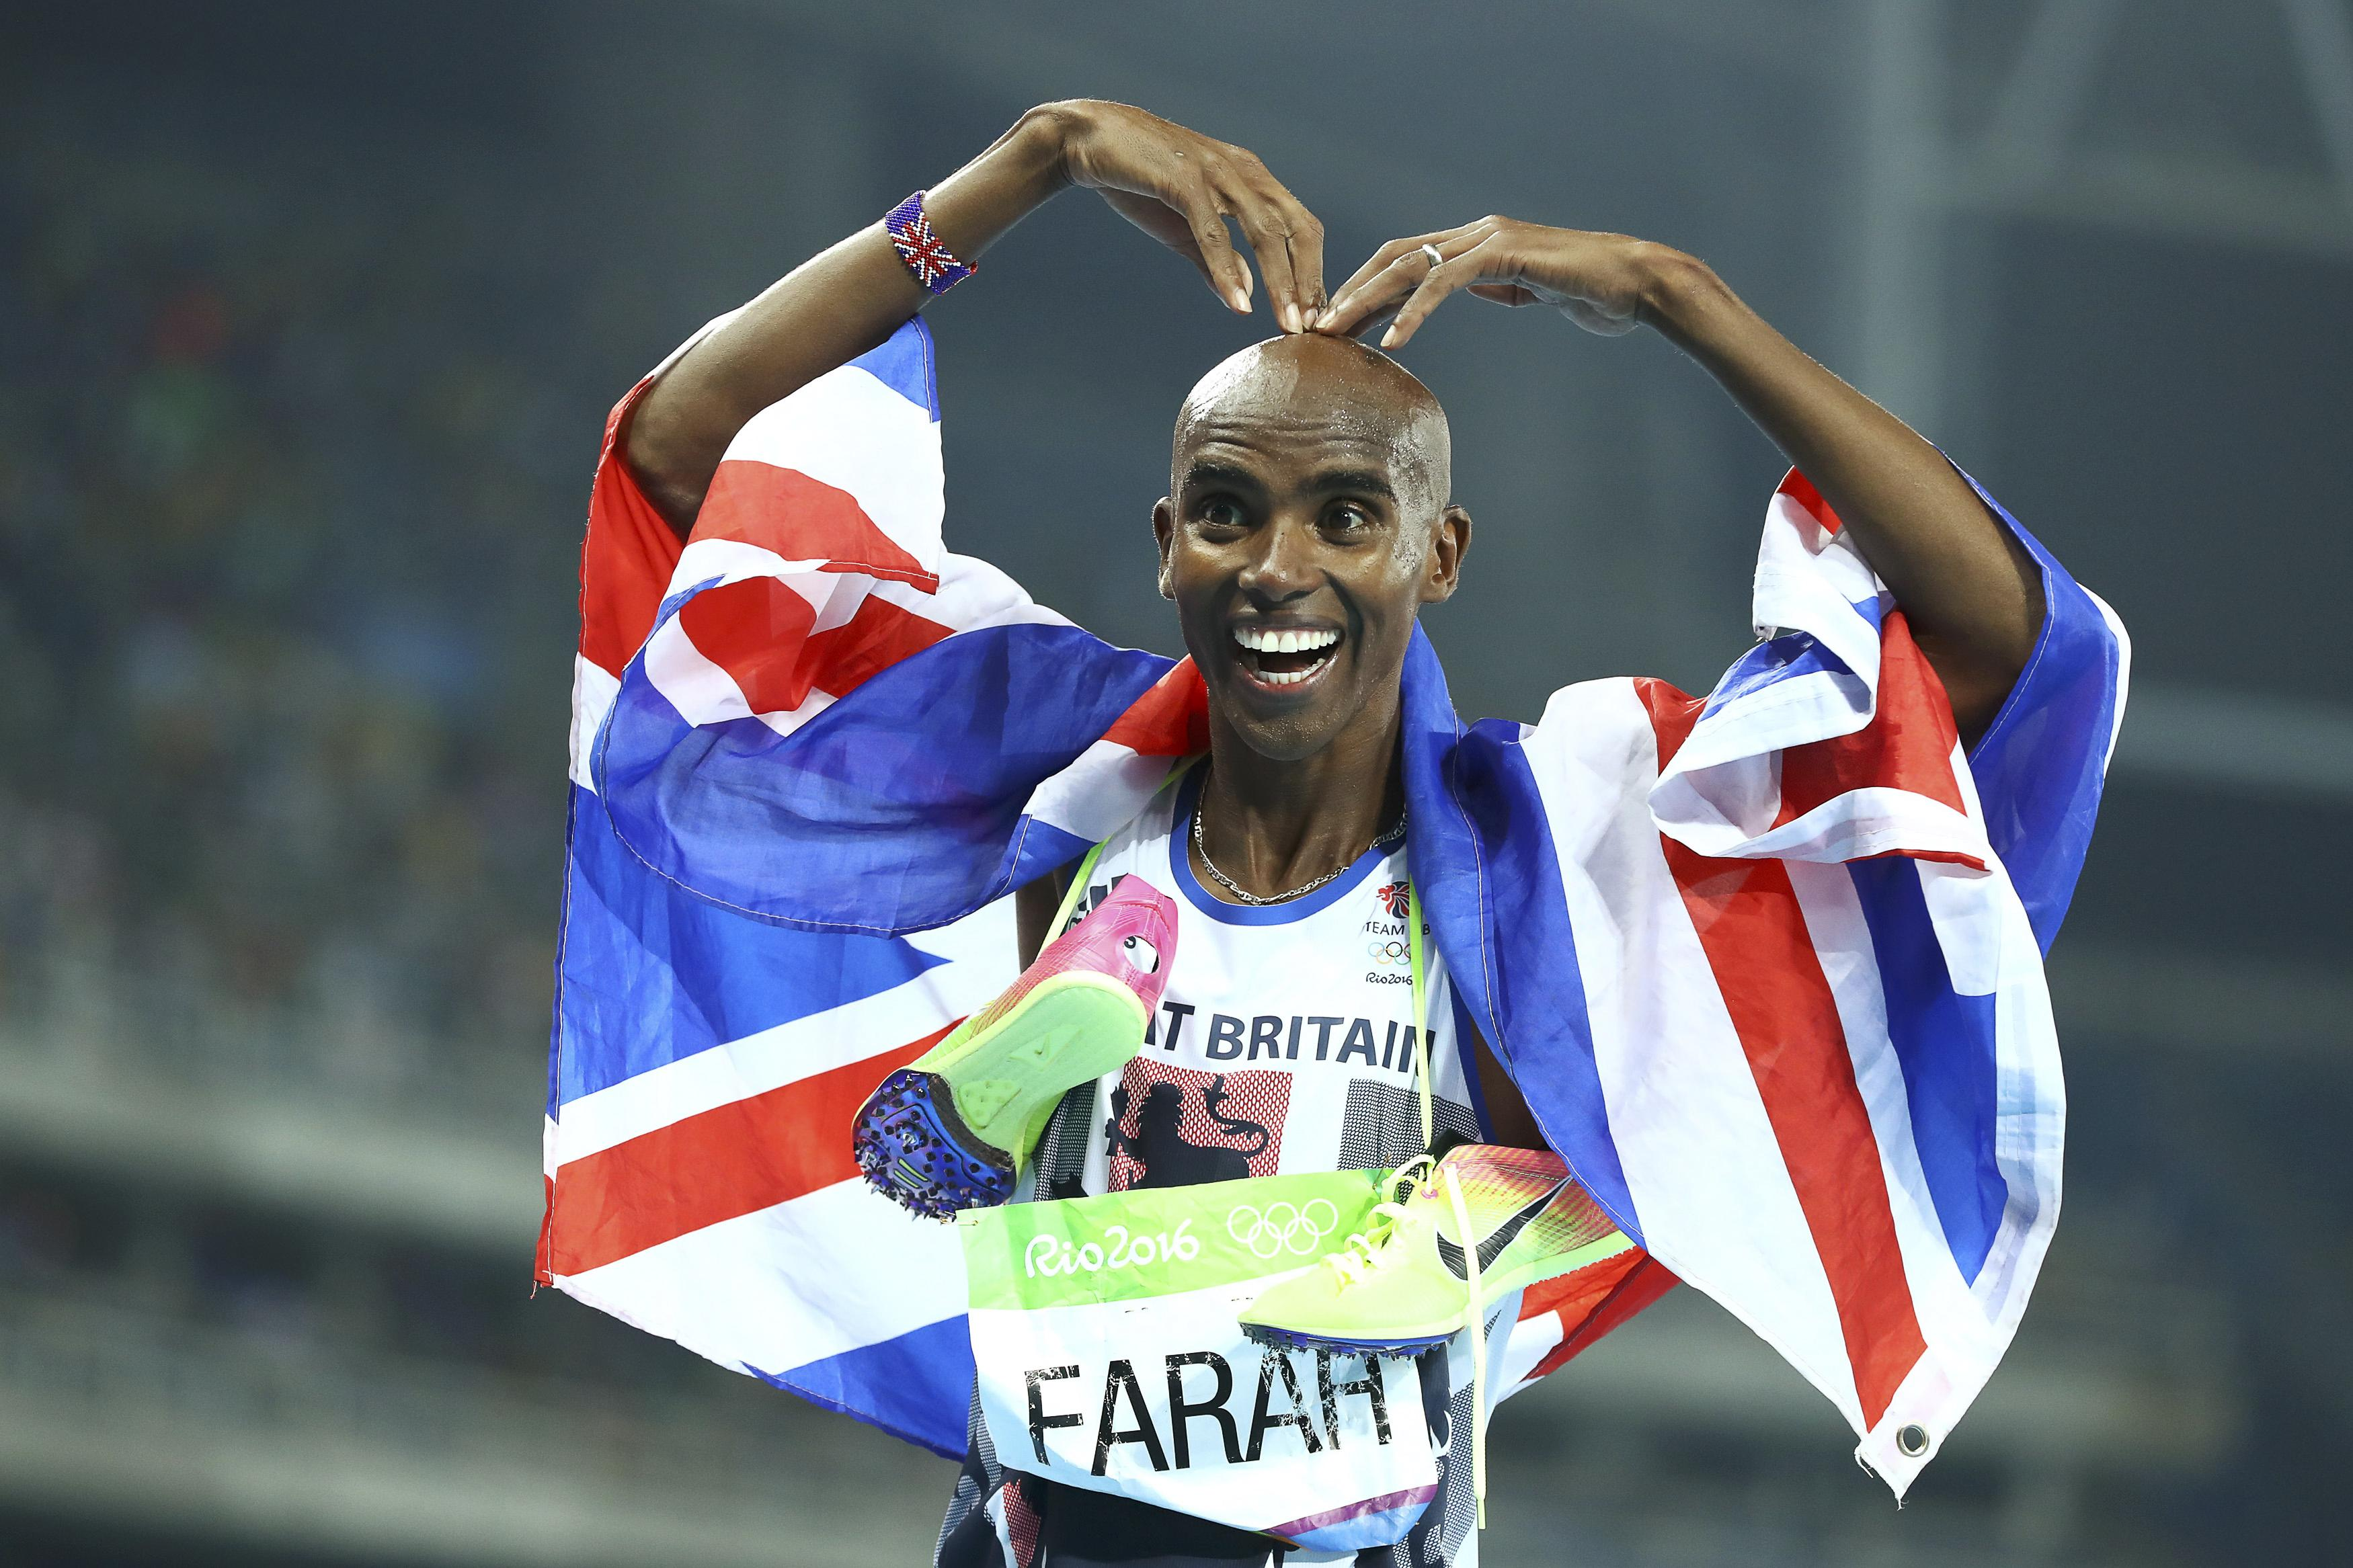 Mo Farah poses winning the gold. Picture: Reuters/Lucy Nicholson